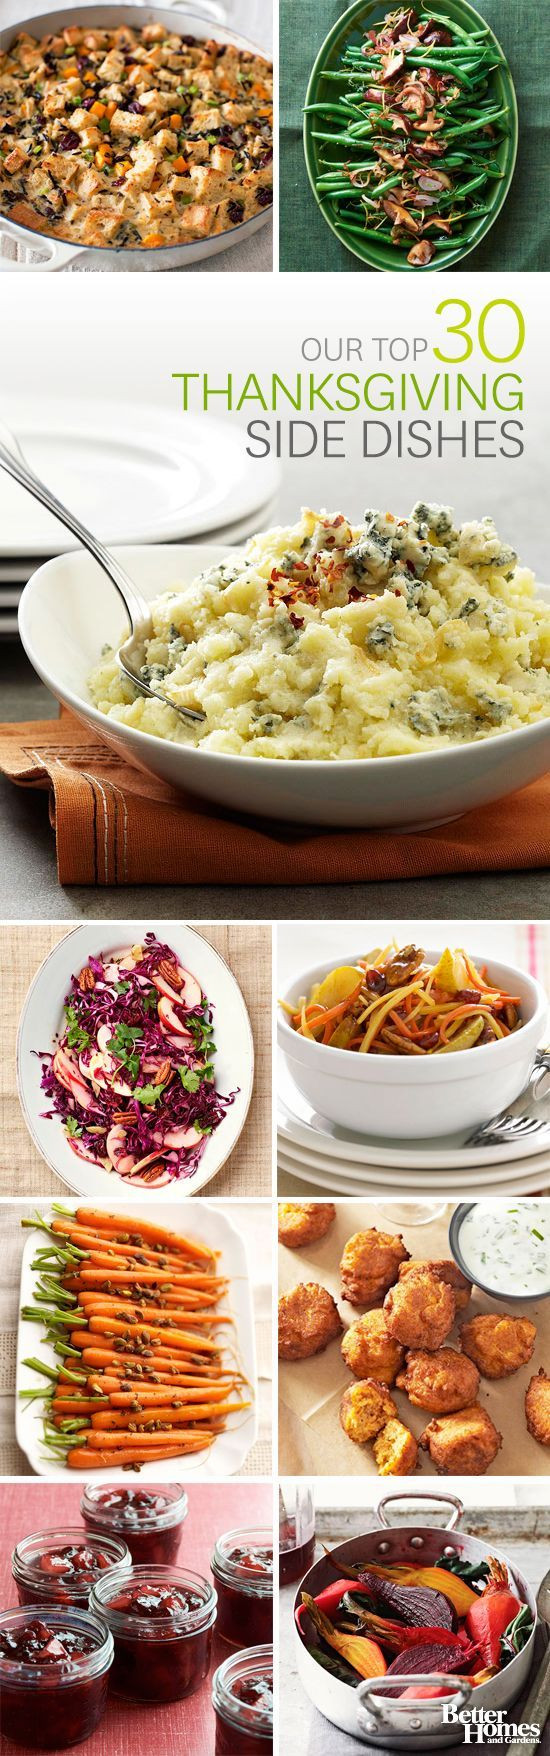 Make Ahead Dishes For Thanksgiving  Make Ahead Holiday Side Dishes